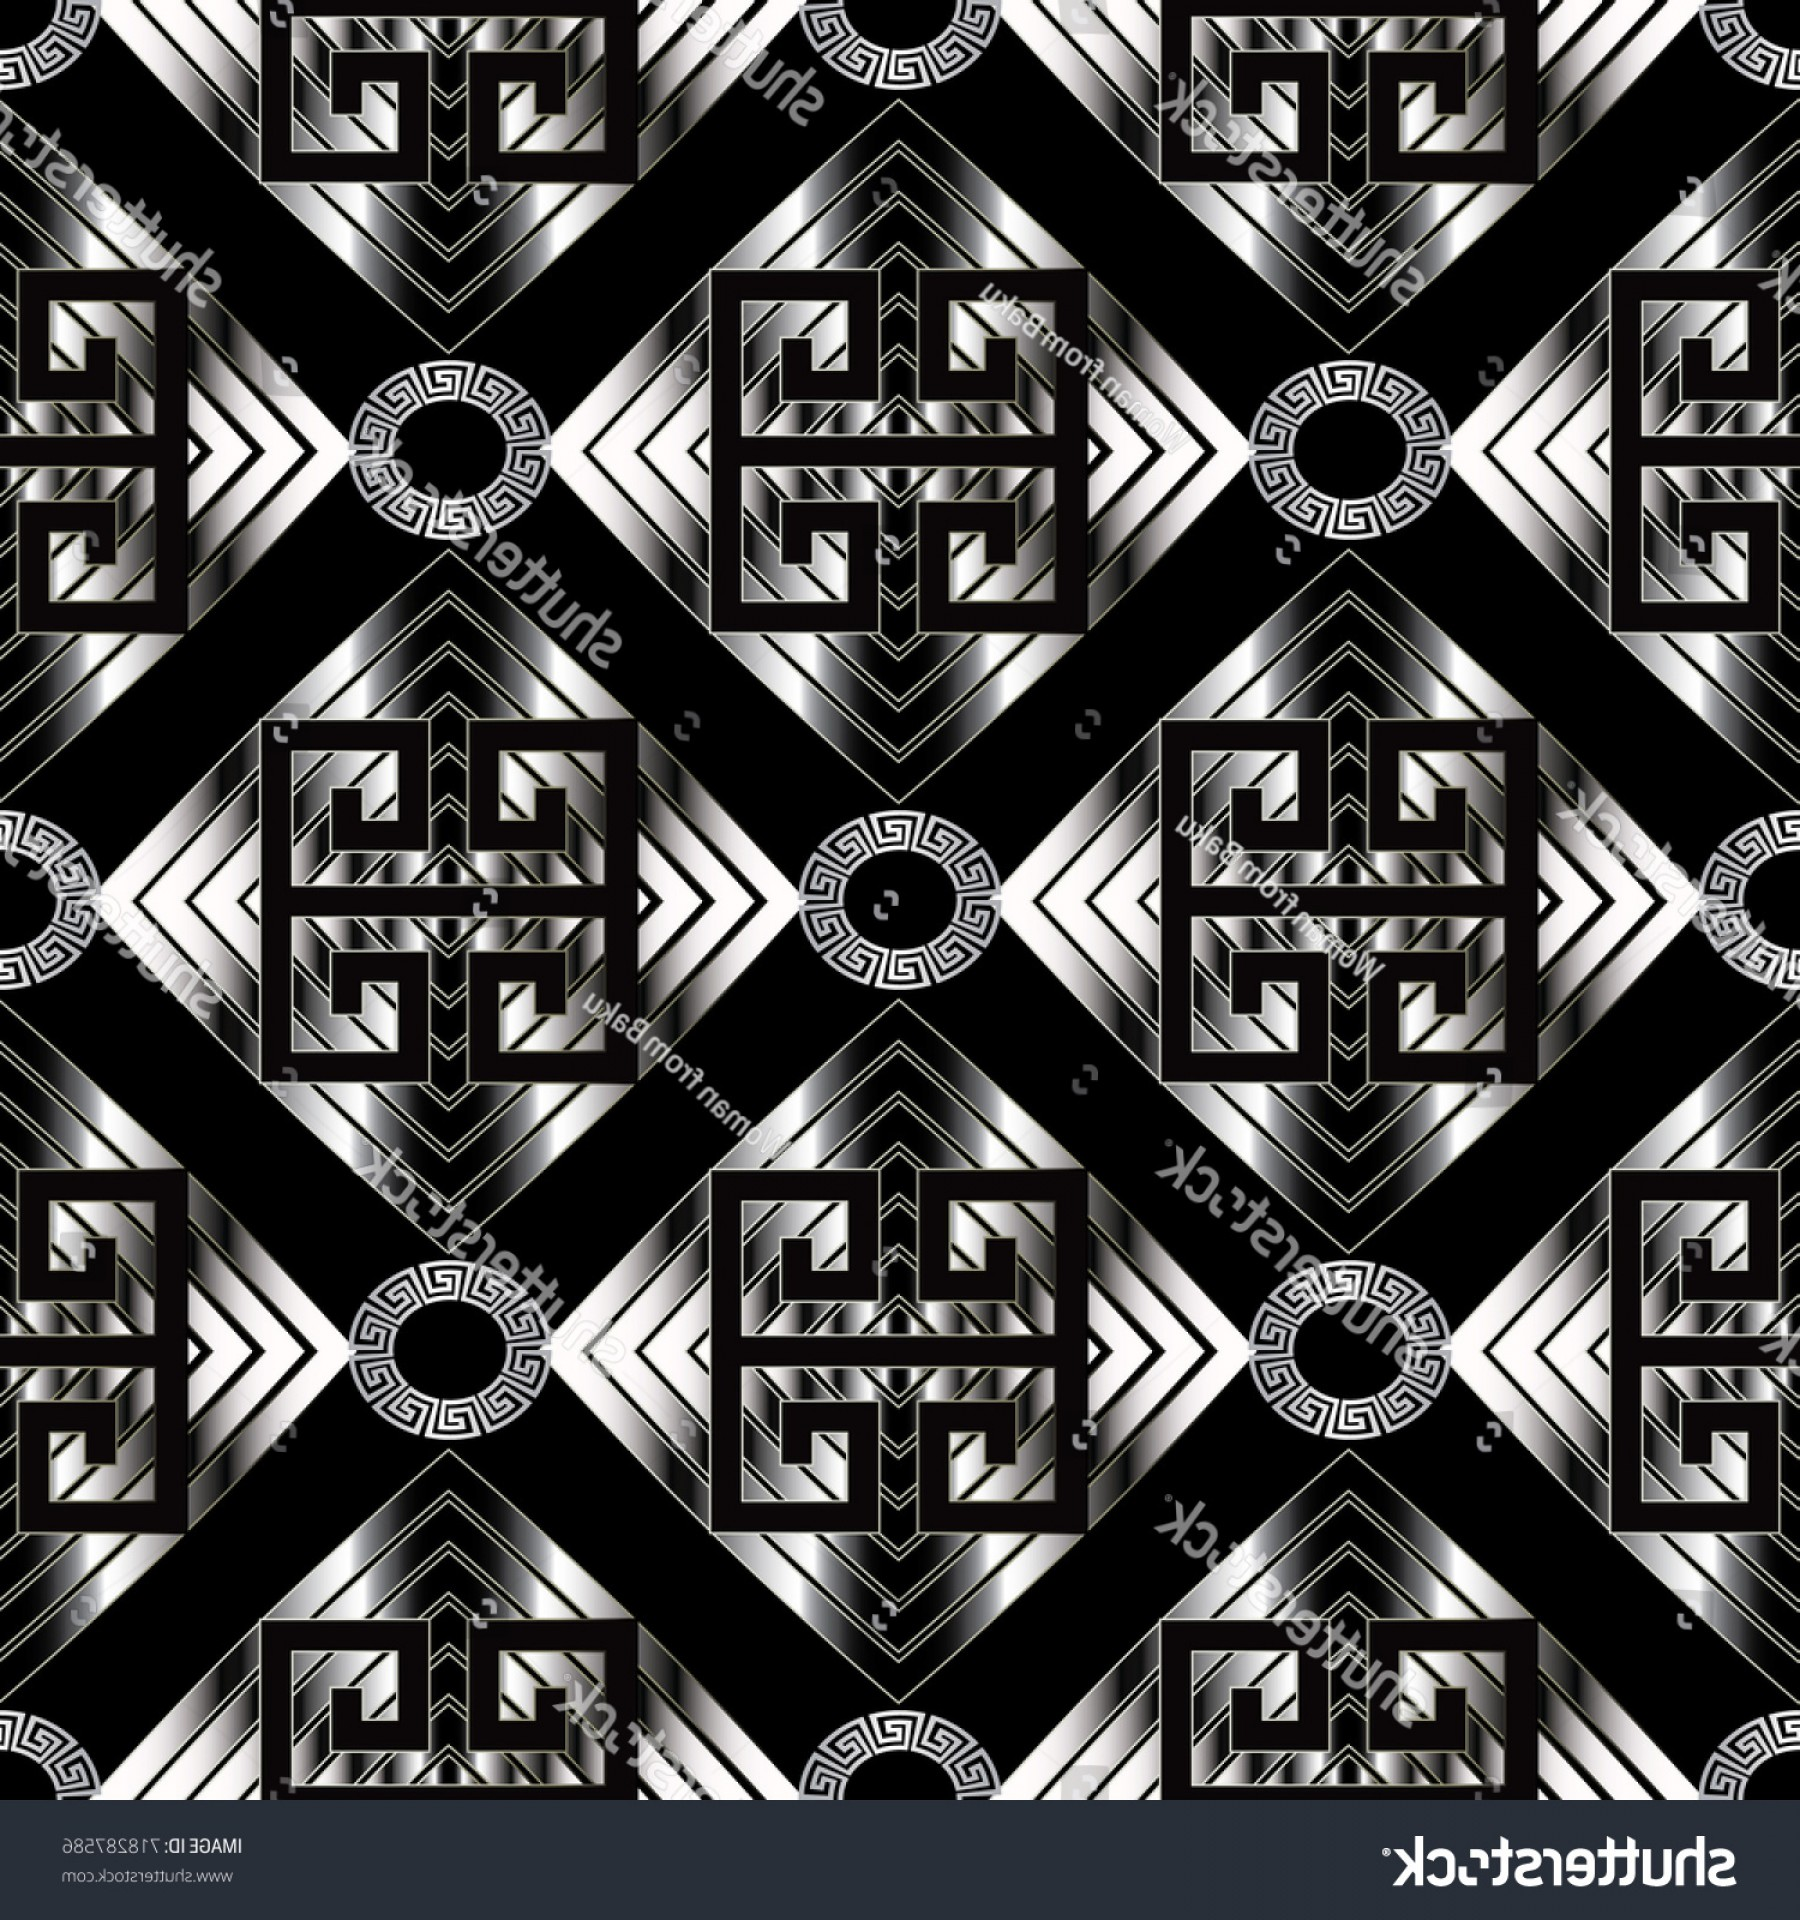 Vector Geometric Abstract Shapes Phone Wallpapers: Geometric Meander Seamless Pattern Black Vector